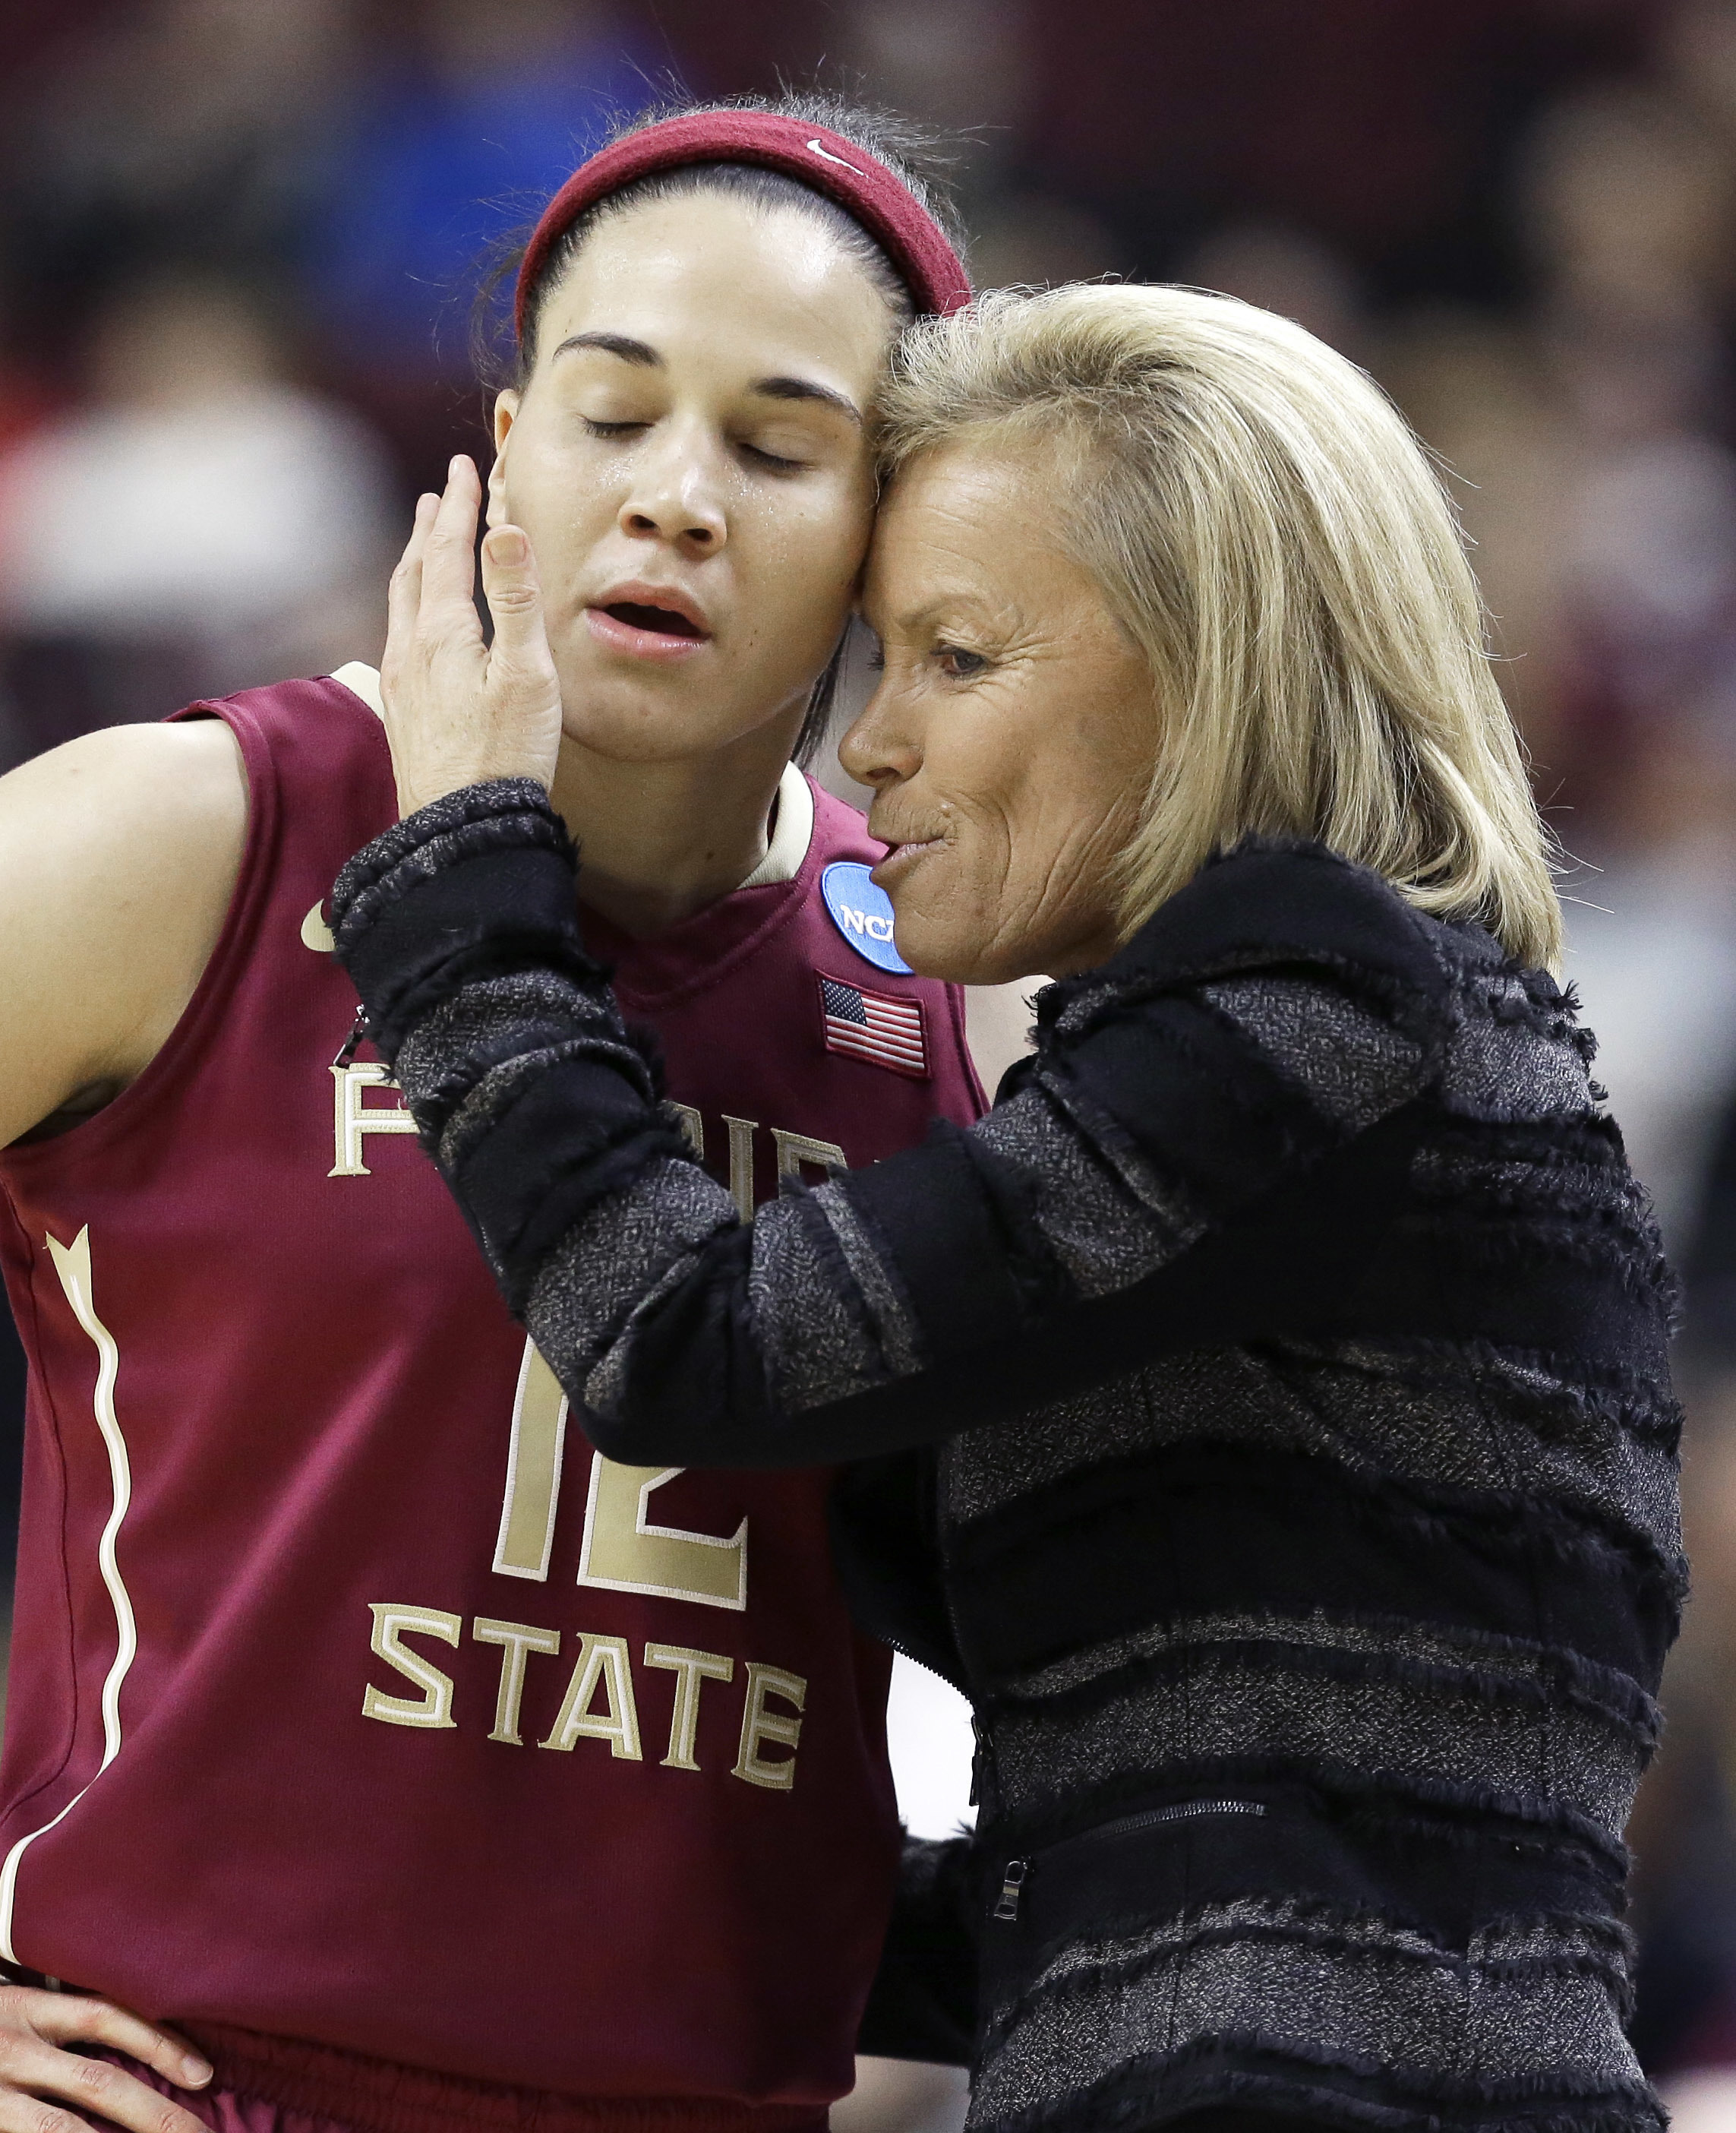 Florida State head coach Sue Semrau, right, talks to Brittany Brown during the second half of a college basketball game against Texas A&M in the second round of the NCAA tournament Monday, March 21, 2016, in College Station, Texas. Florida State won 74-56